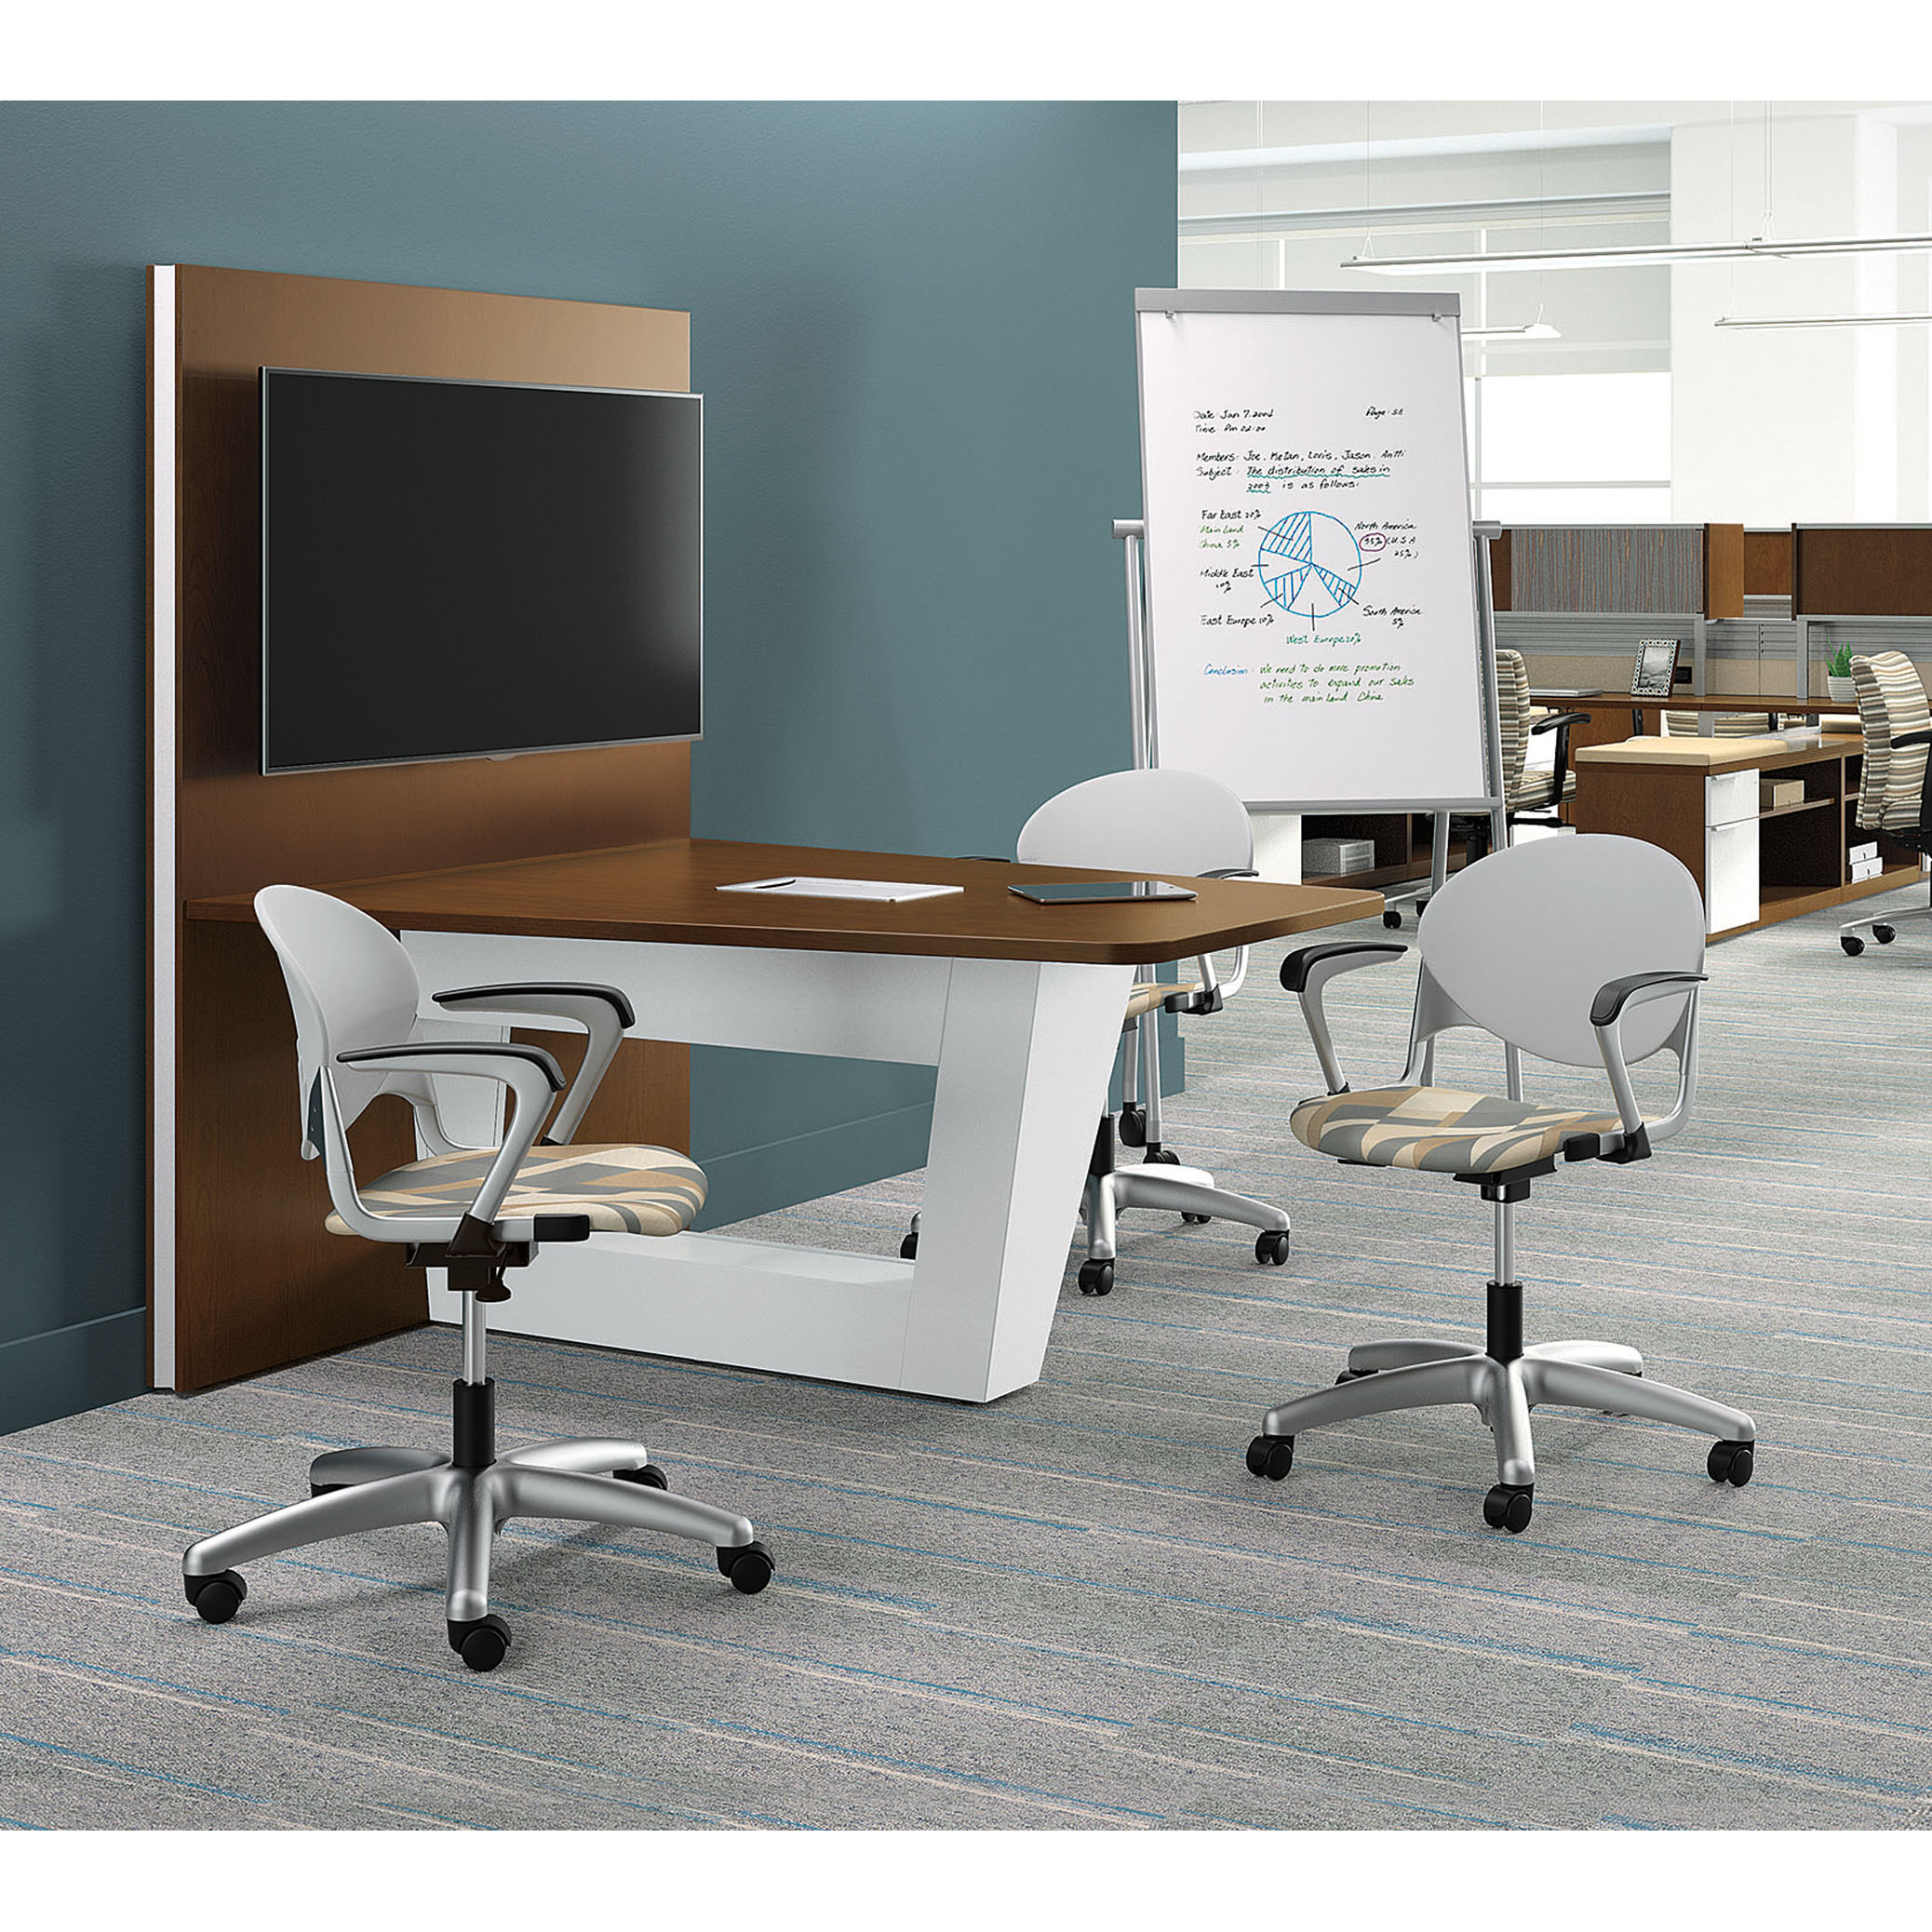 92 Used Office Furniture Chicago North Suburbs